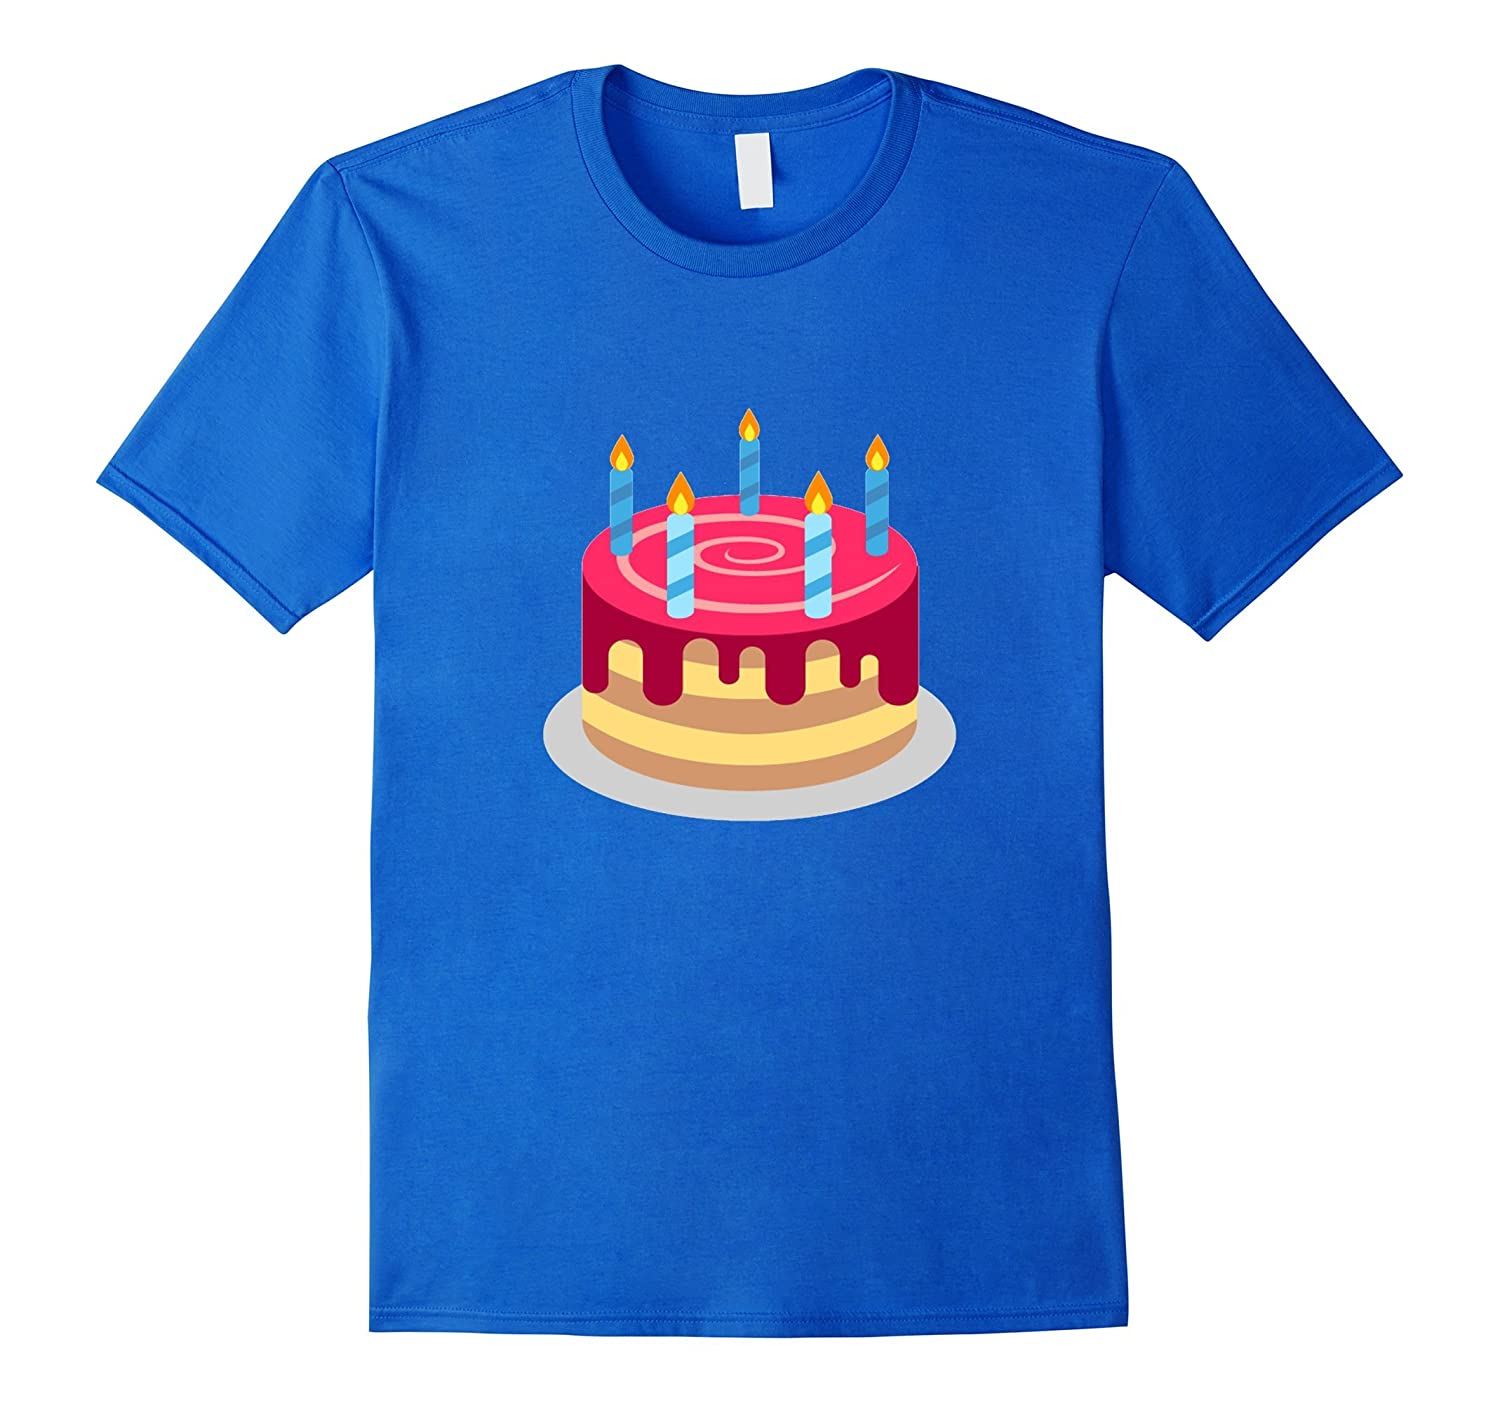 Birthday Cake Emoji T Shirt Candles Frosting Party Cut Slice Gm